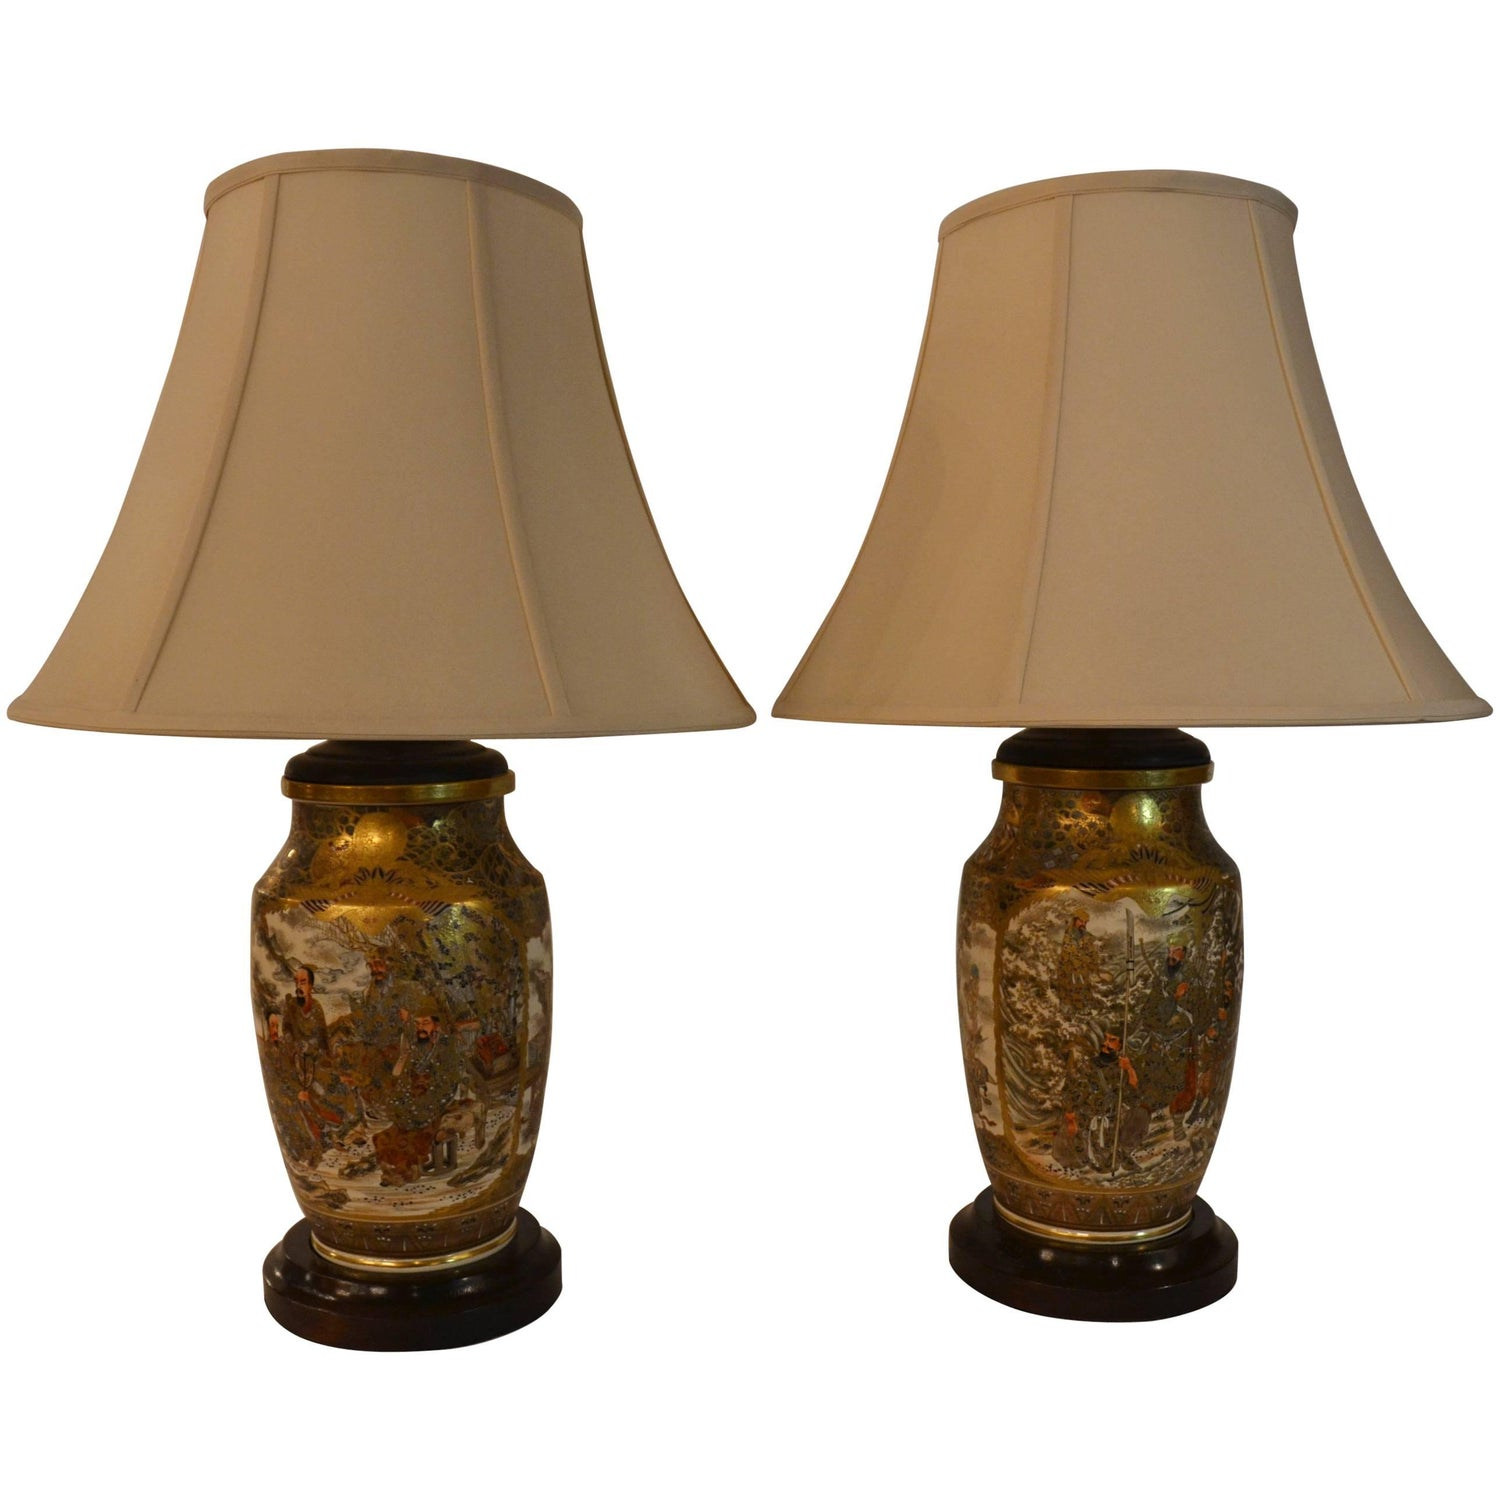 Japanese table lamps 175 for sale at 1stdibs pair of antique satsuma japanese lamps with mahogany base geotapseo Choice Image